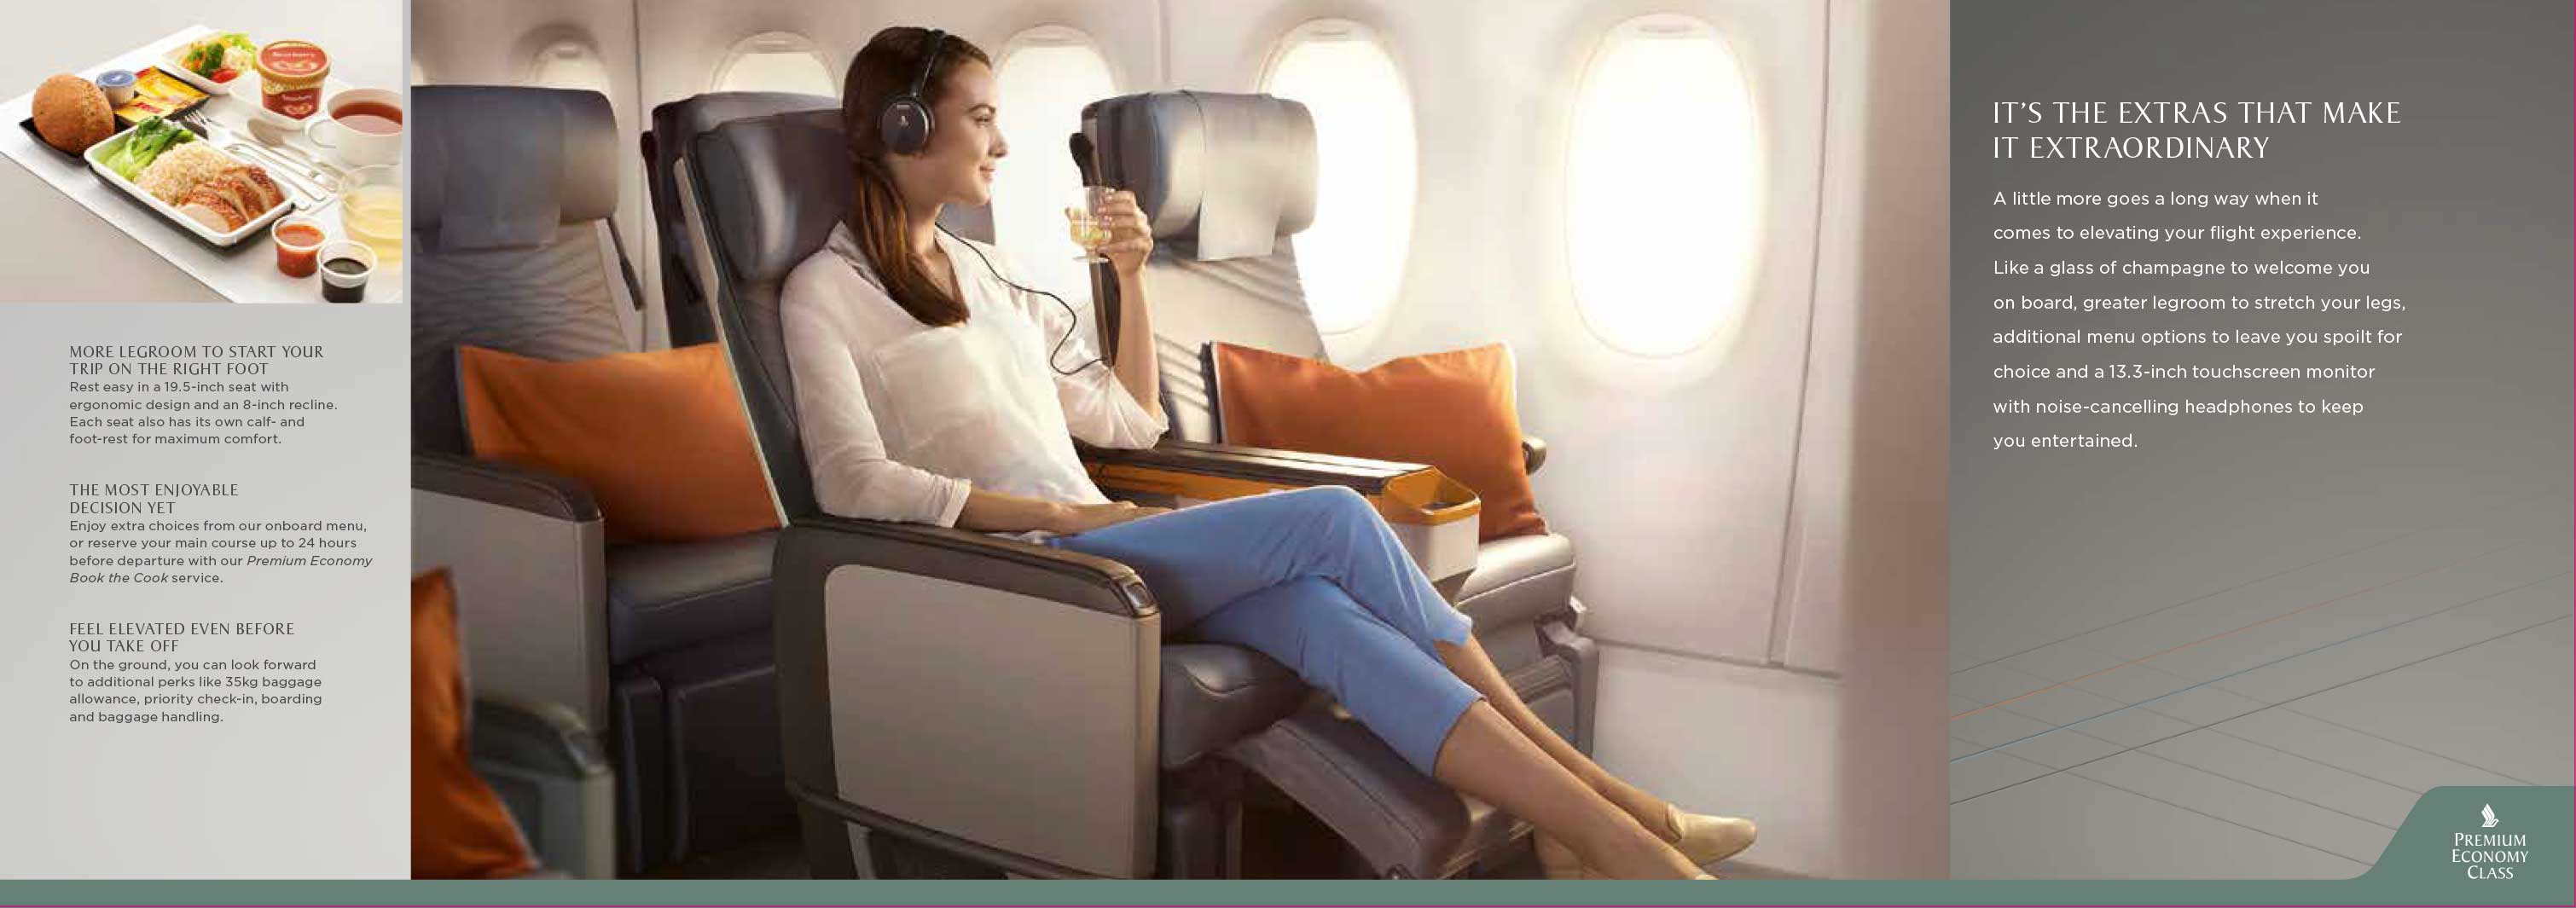 SIA-A380-New-Cabin-Products-Brochure-7